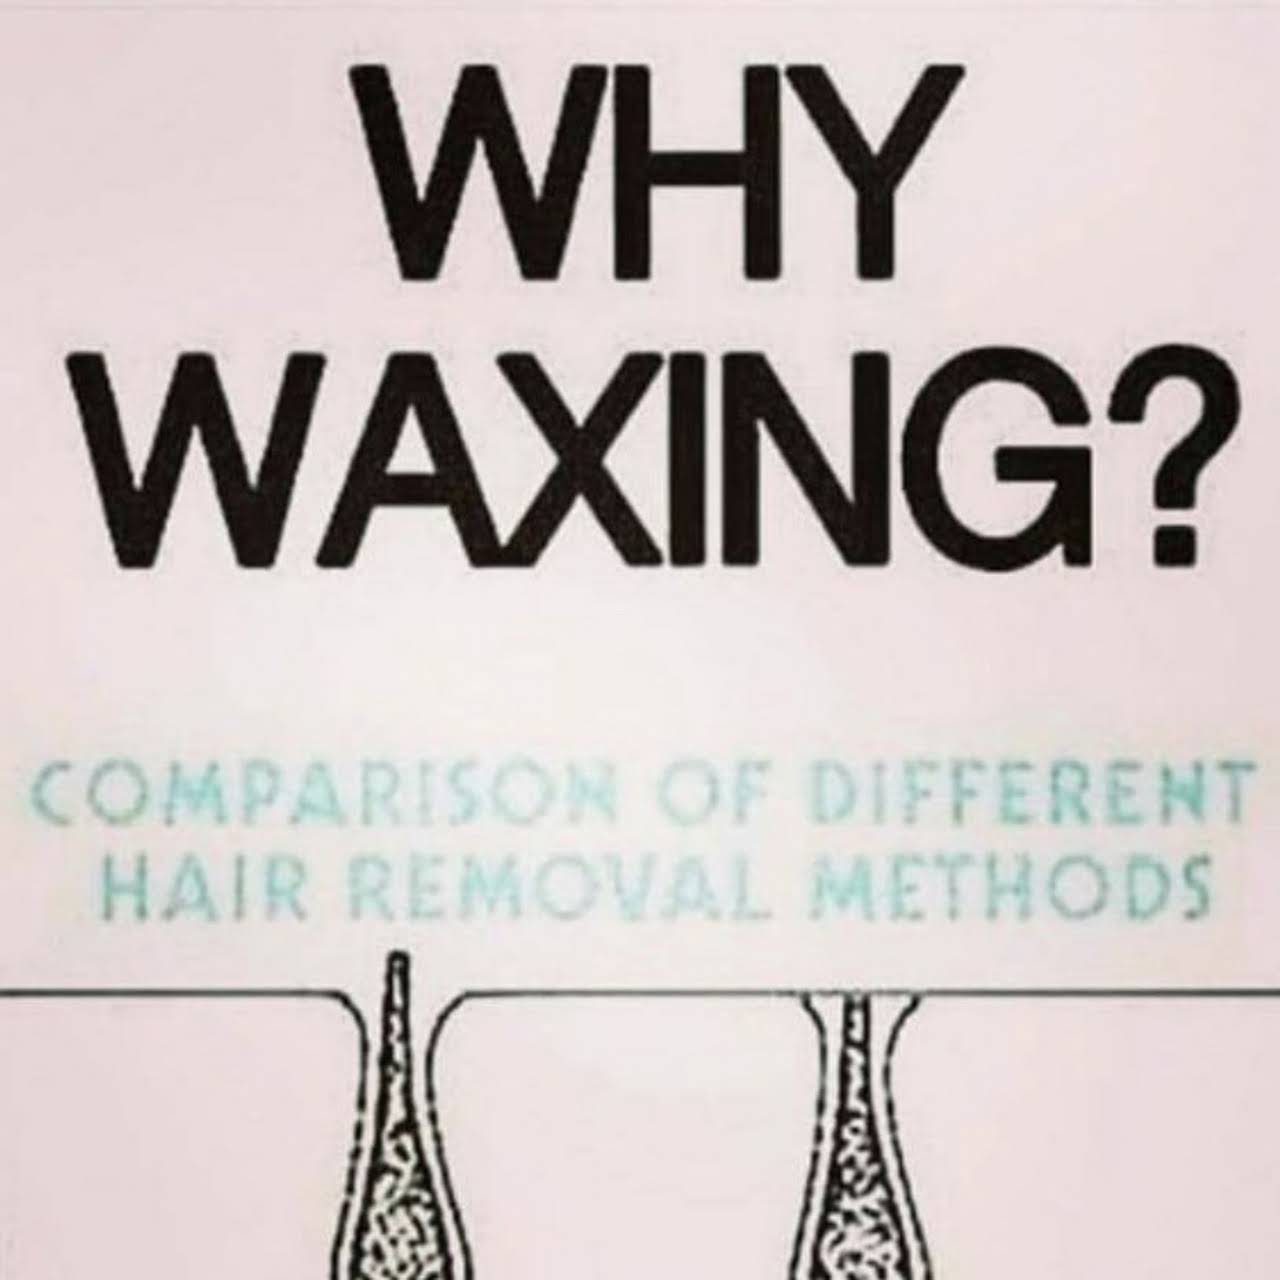 Luann S Hair Styles And Waxing Hair Salon And Body Waxing In